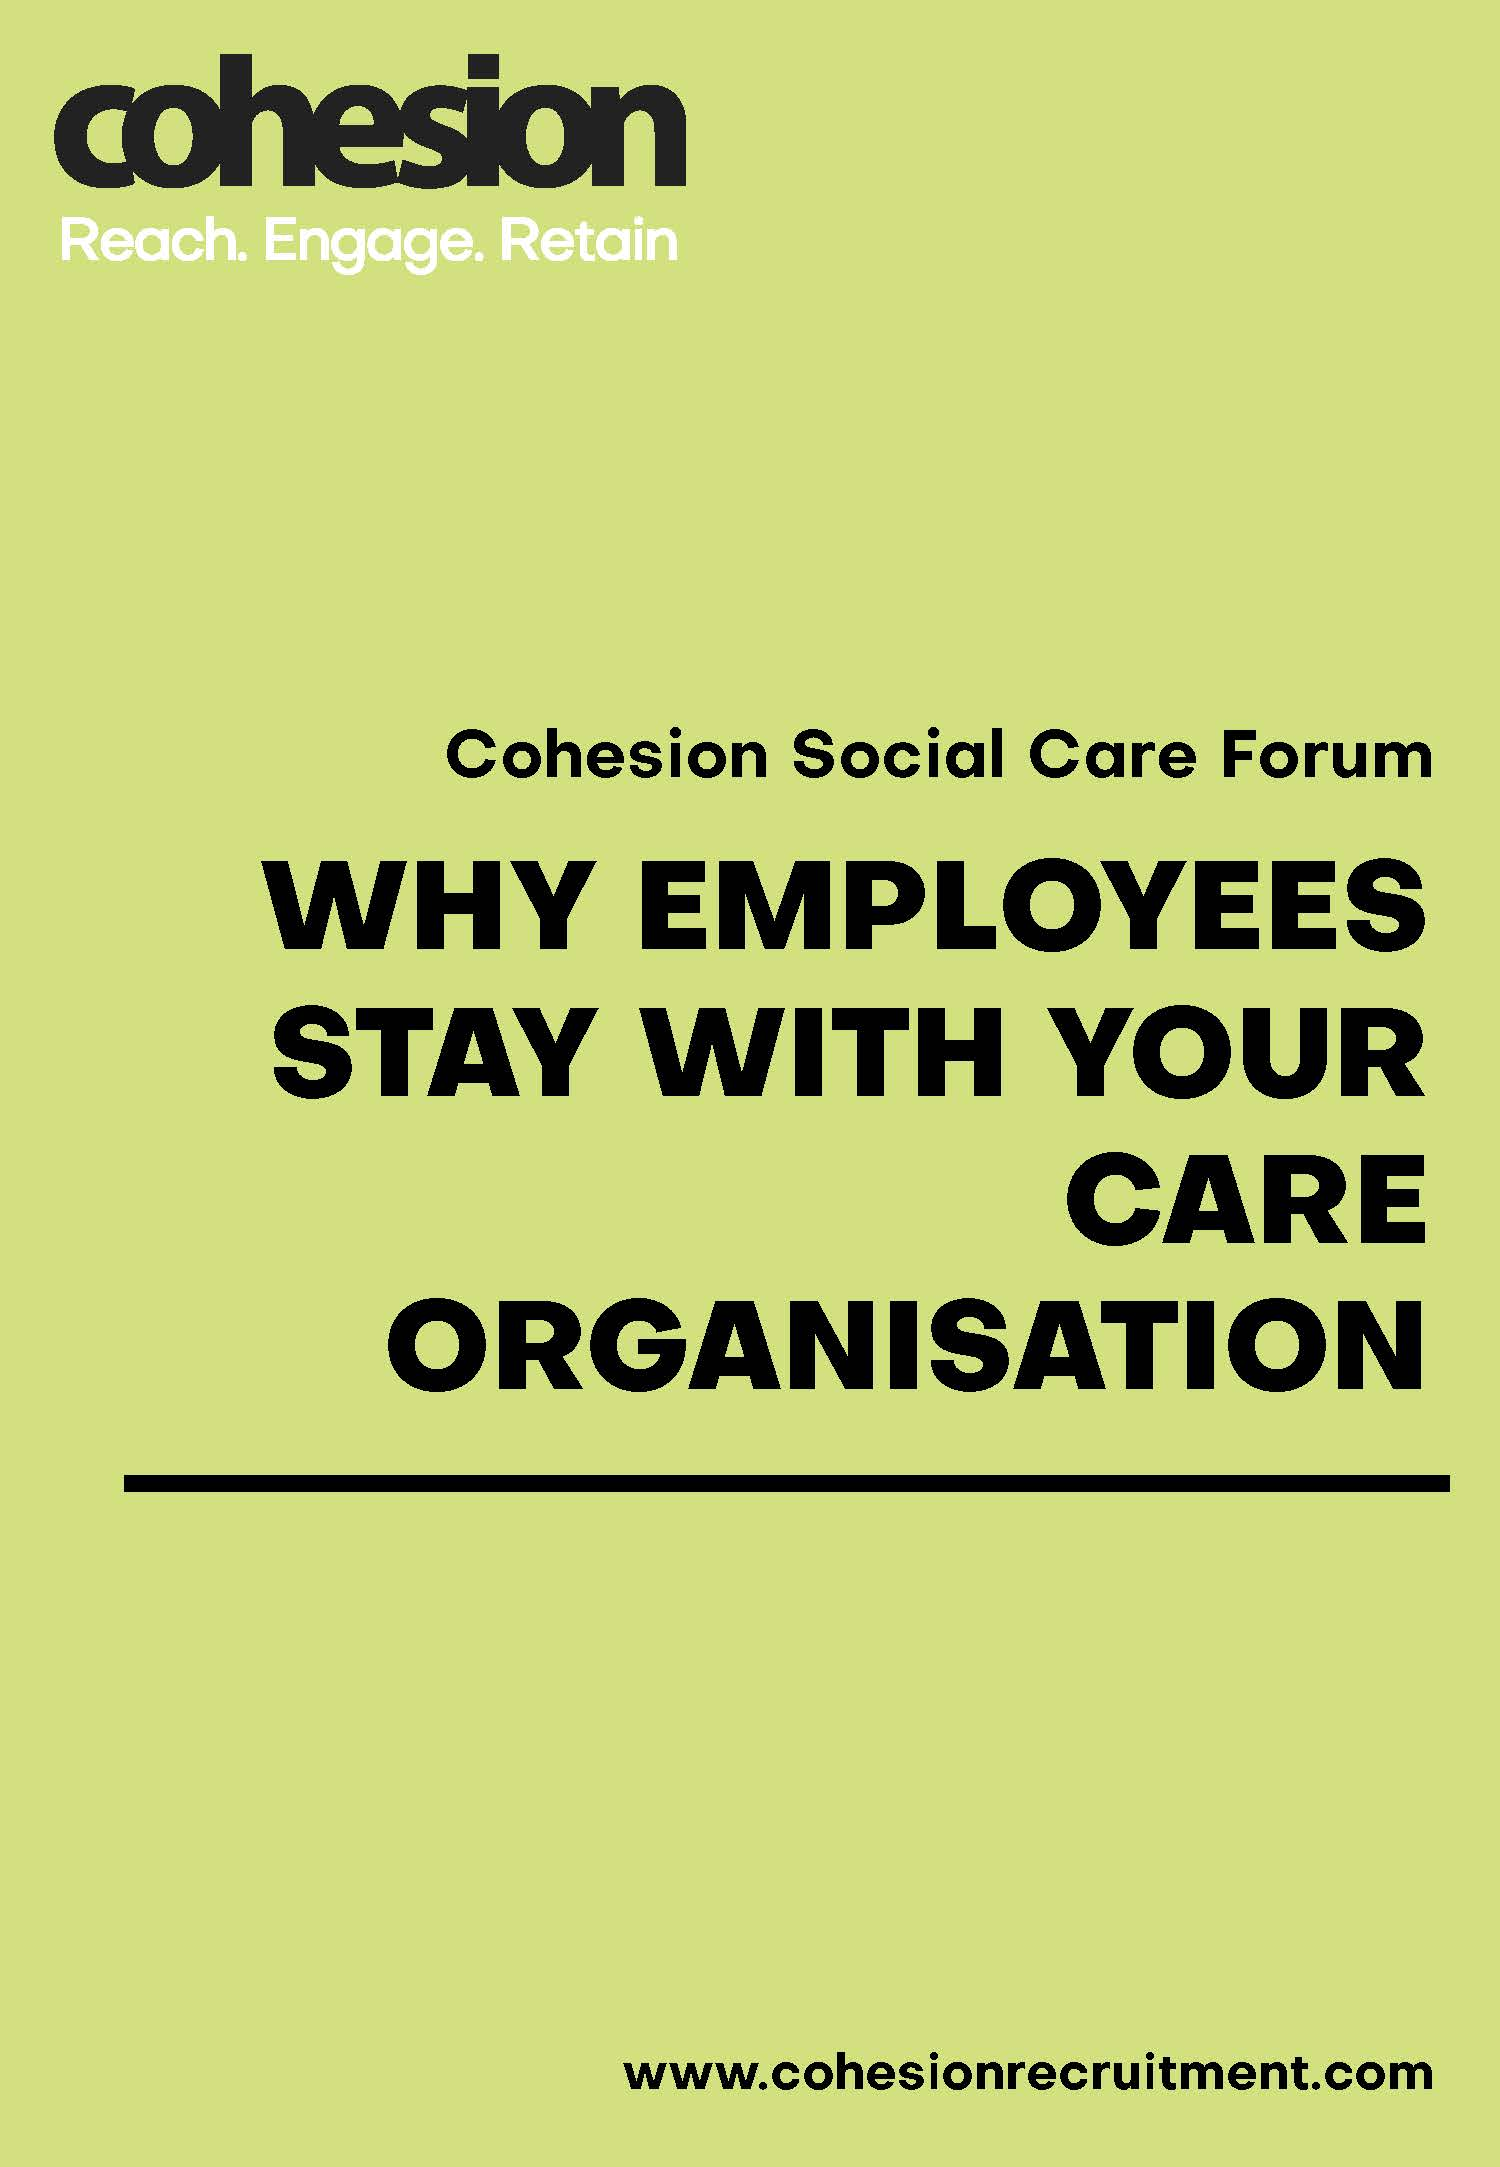 Why employees stay with your organisation